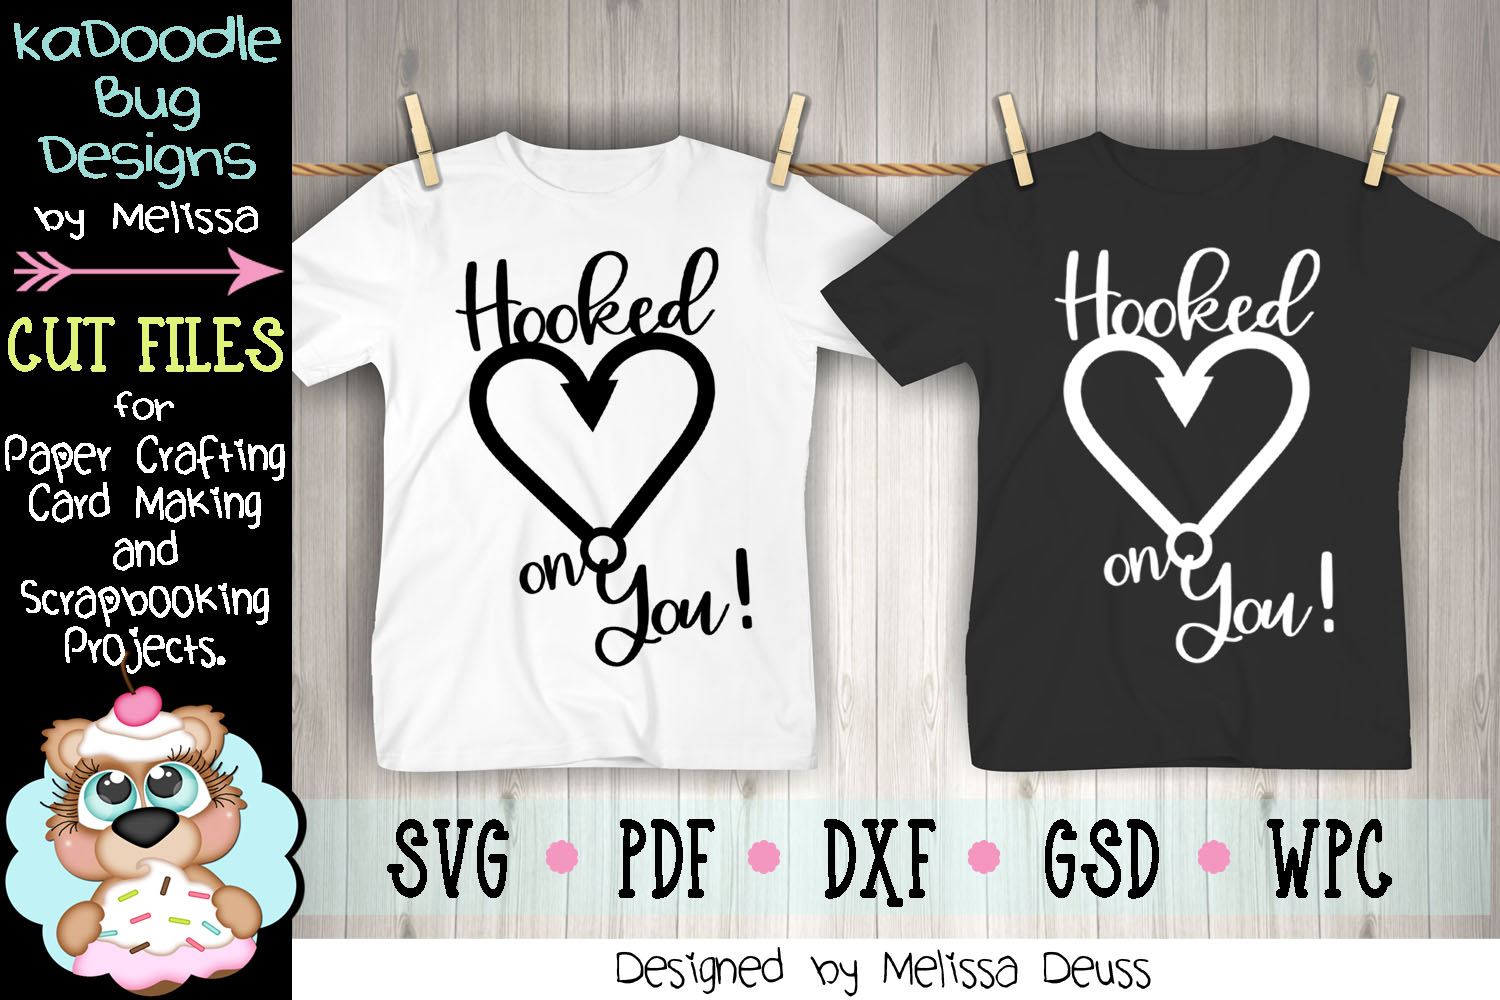 Hooked On You Cut File - SVG PDF DXF GSD WPC example image 3